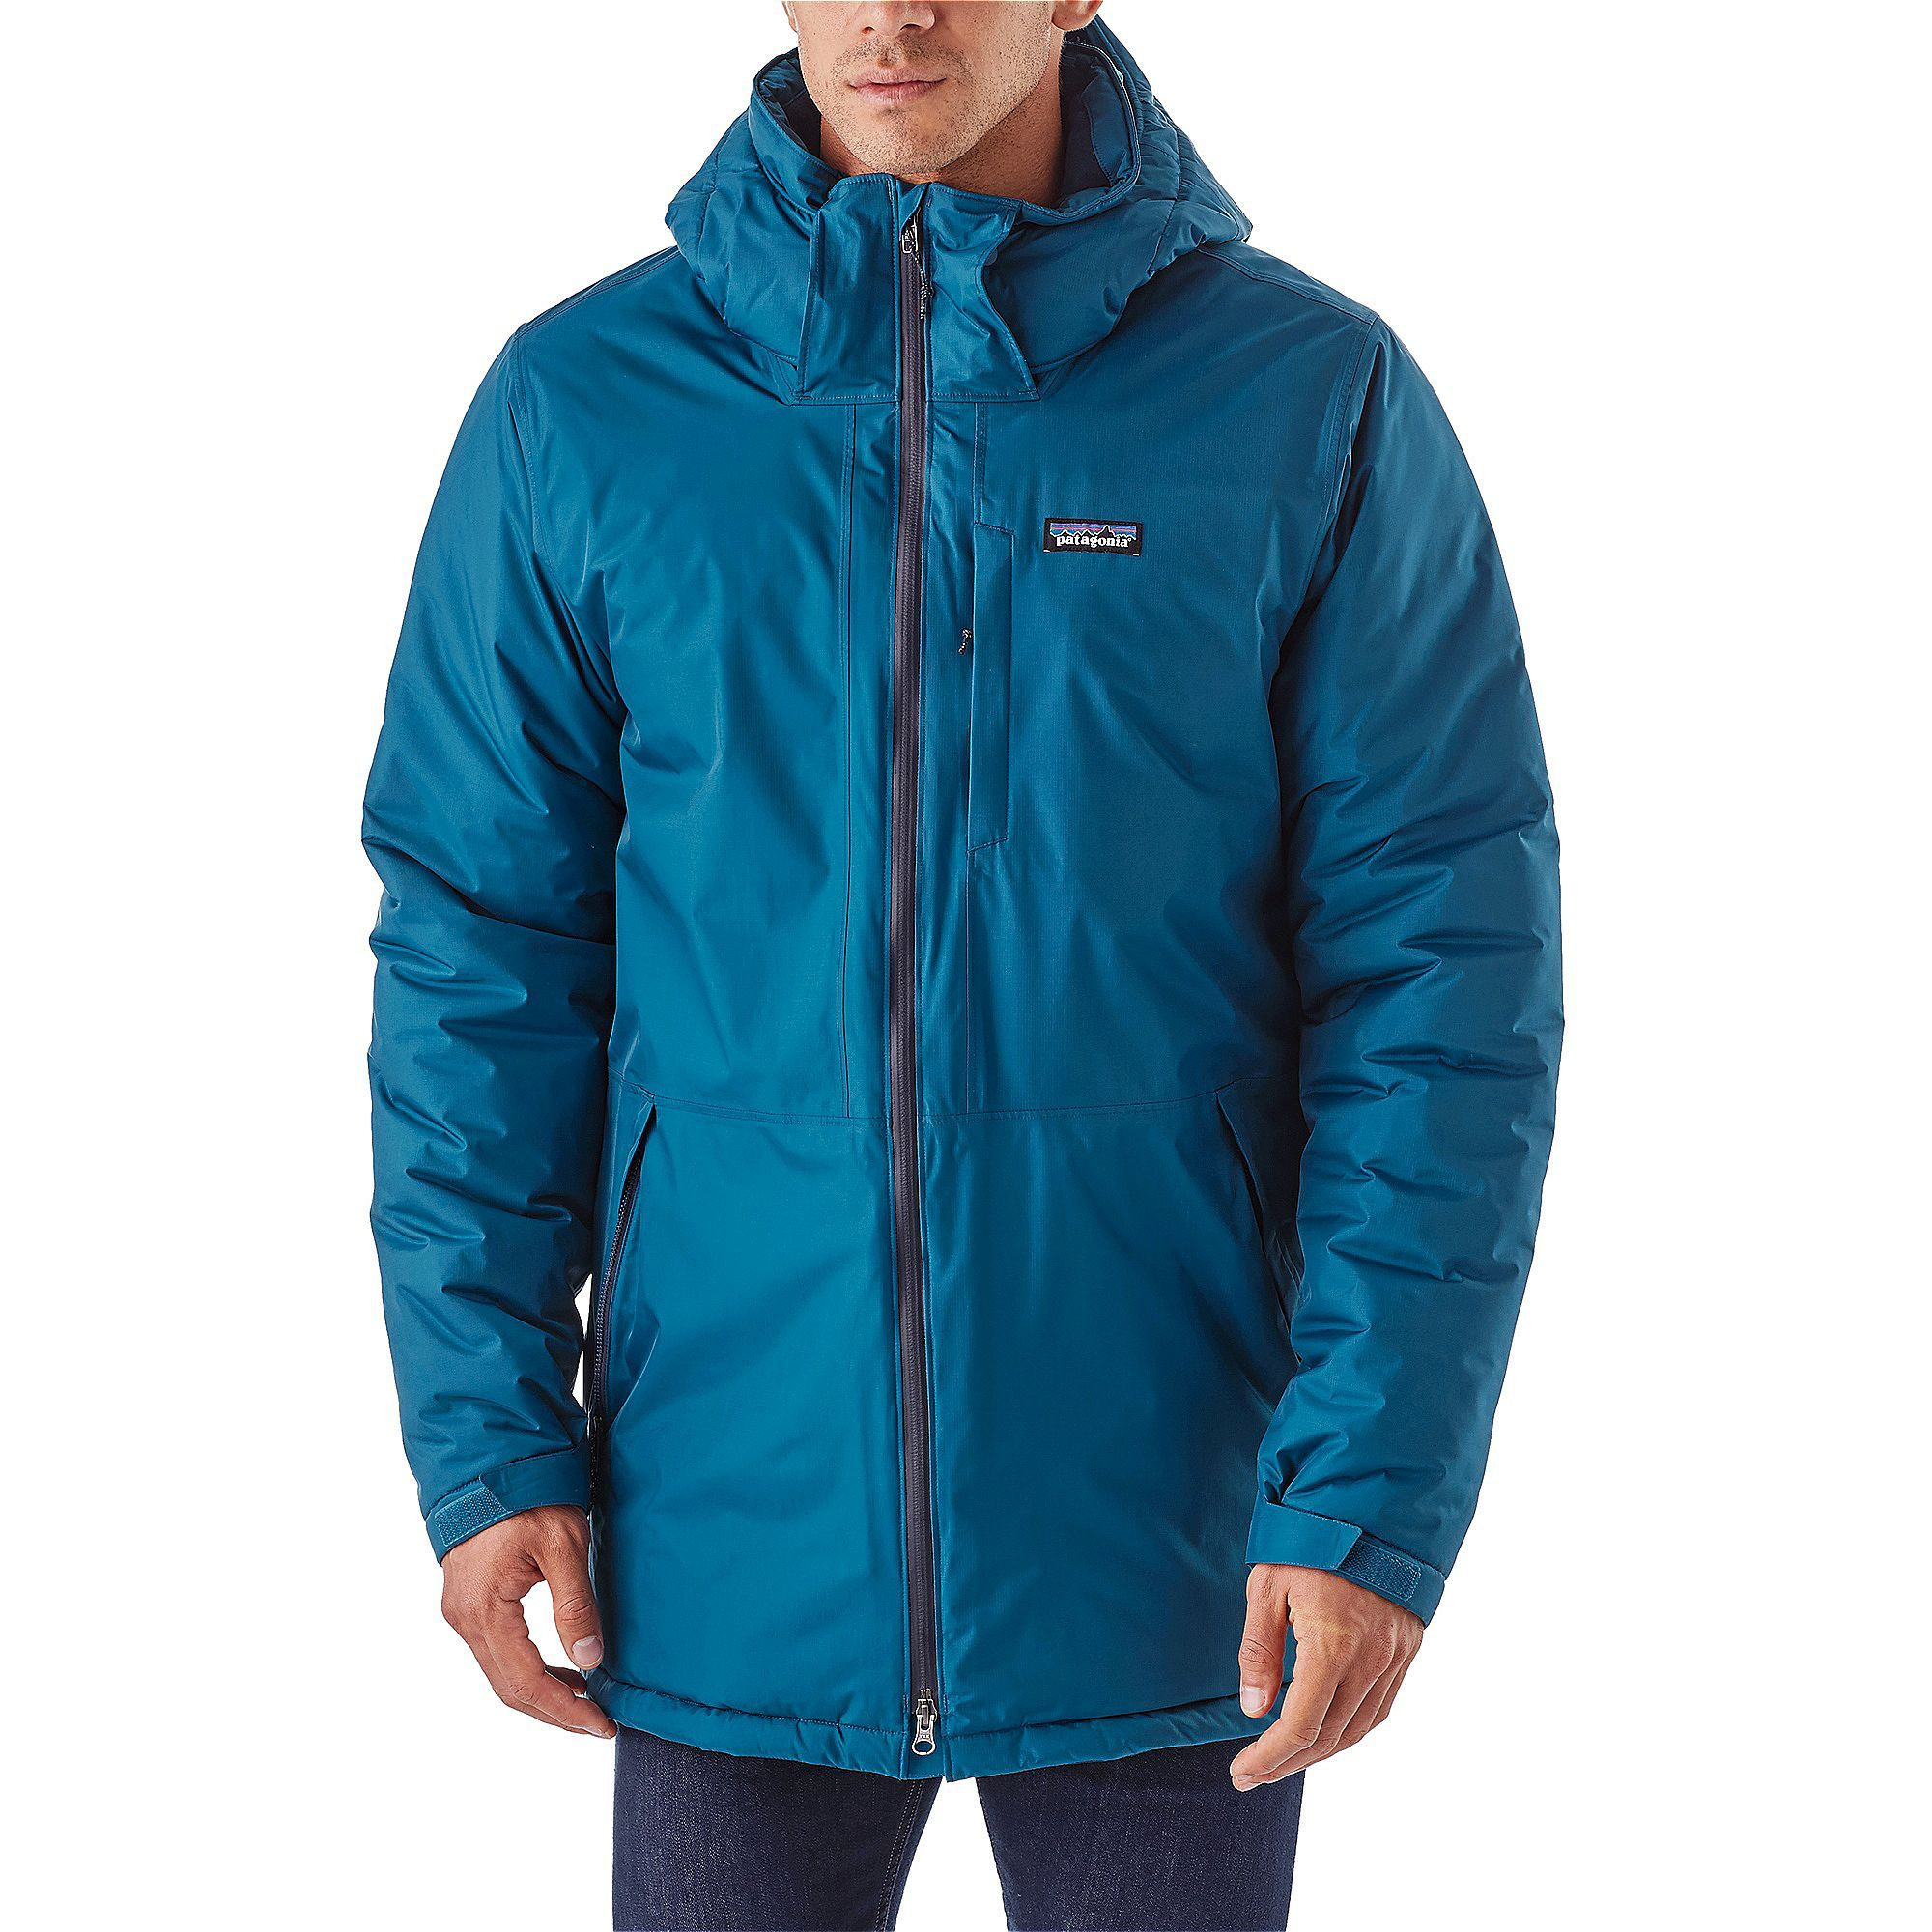 c5941246f6caa Patagonia Men's Insulated Torrentshell Waterproof Parka | Groom ...